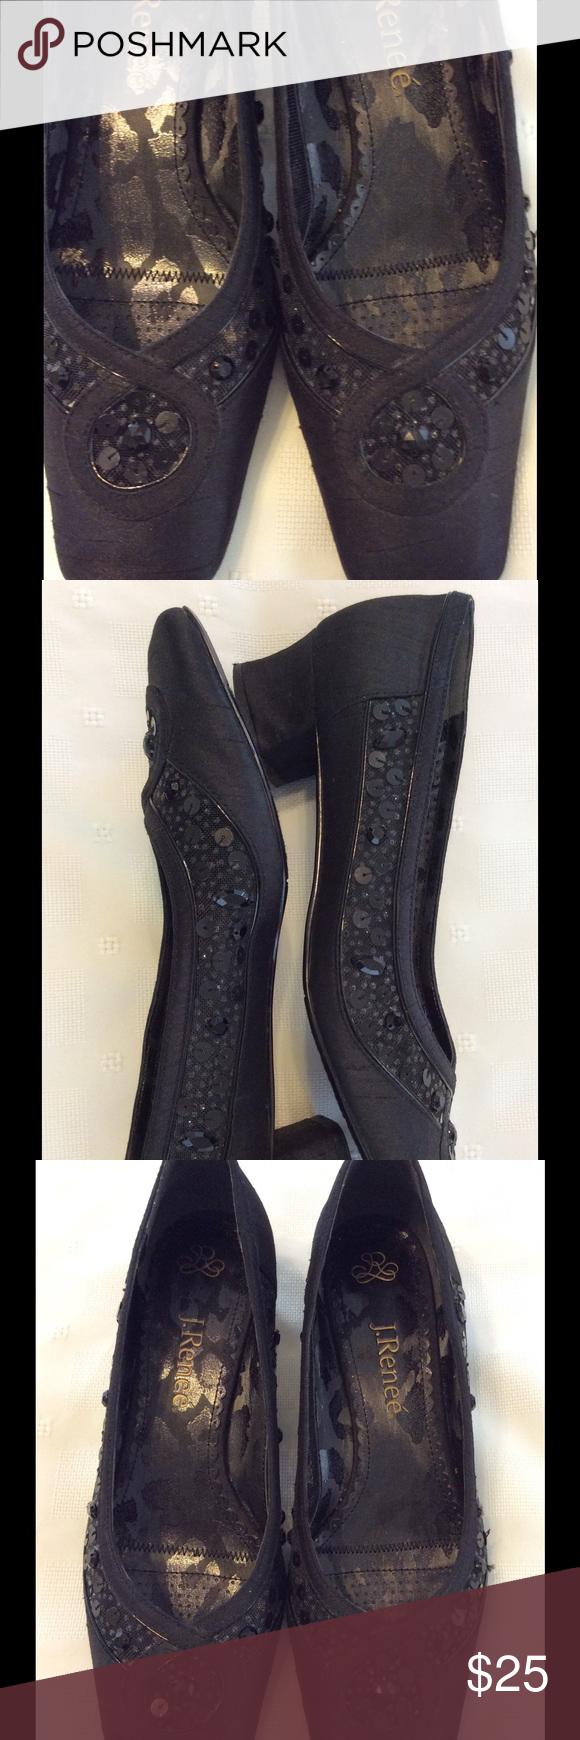 """Black satin with mesh sequin and bead accents EUC Very pretty, worn once or twice.  1 1/2"""" heel. J. Renee' Shoes Heels"""